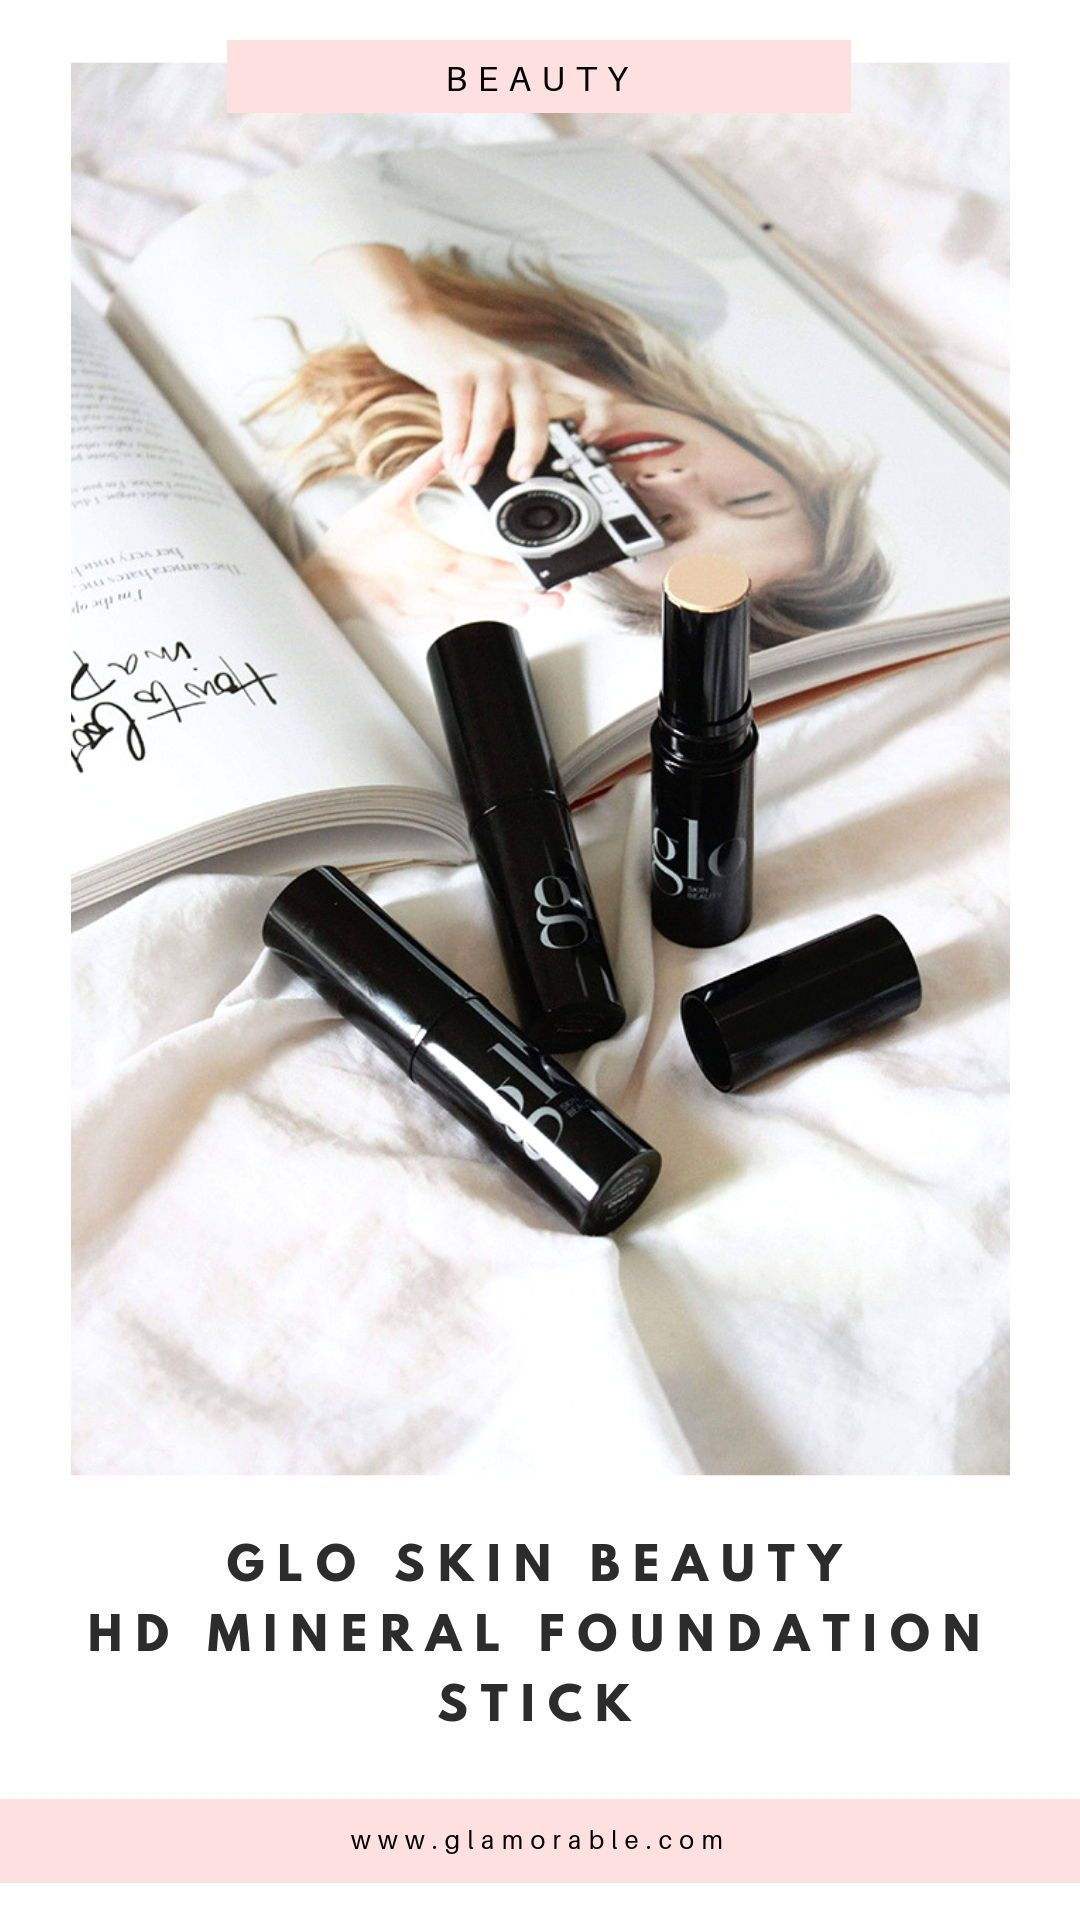 Glo Skin Beauty HD Mineral Foundation Stick Review